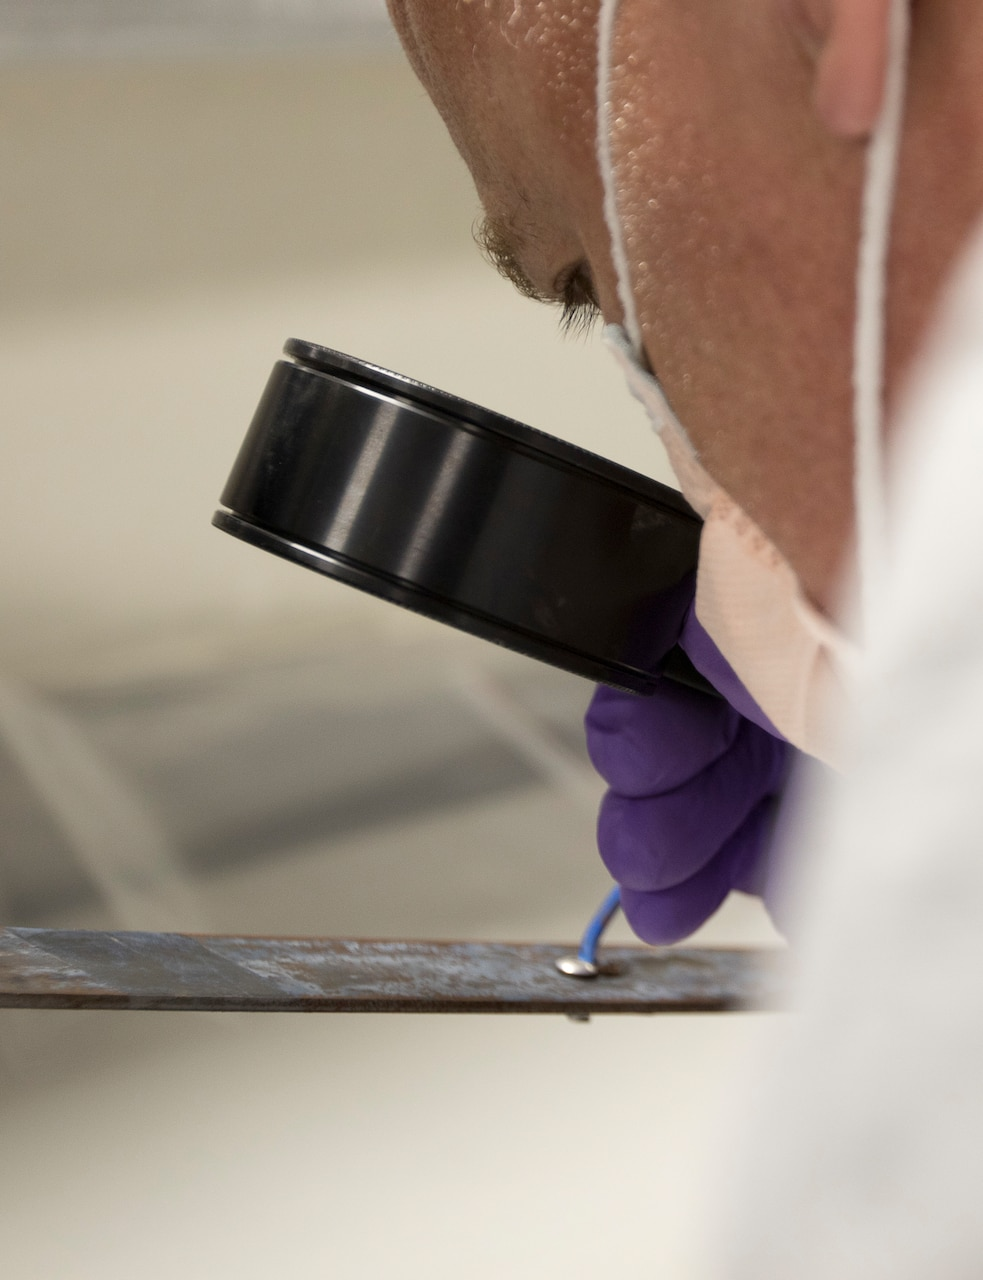 Timothy Kesterson, a latent print examiner, assigned to the Forensic Exploitation Laboratory – Central Command inspects a recovered piece of metal used as a pressure plate in an improvised explosive device uncovered in an undisclosed location in CENTCOM's area of responsibility at Camp Arifjan, Kuwait, August 9, 2018. The FXL-C continually adapts and moves forward with emerging new technology to sustain a powerful and lethal combat force in the battleground.